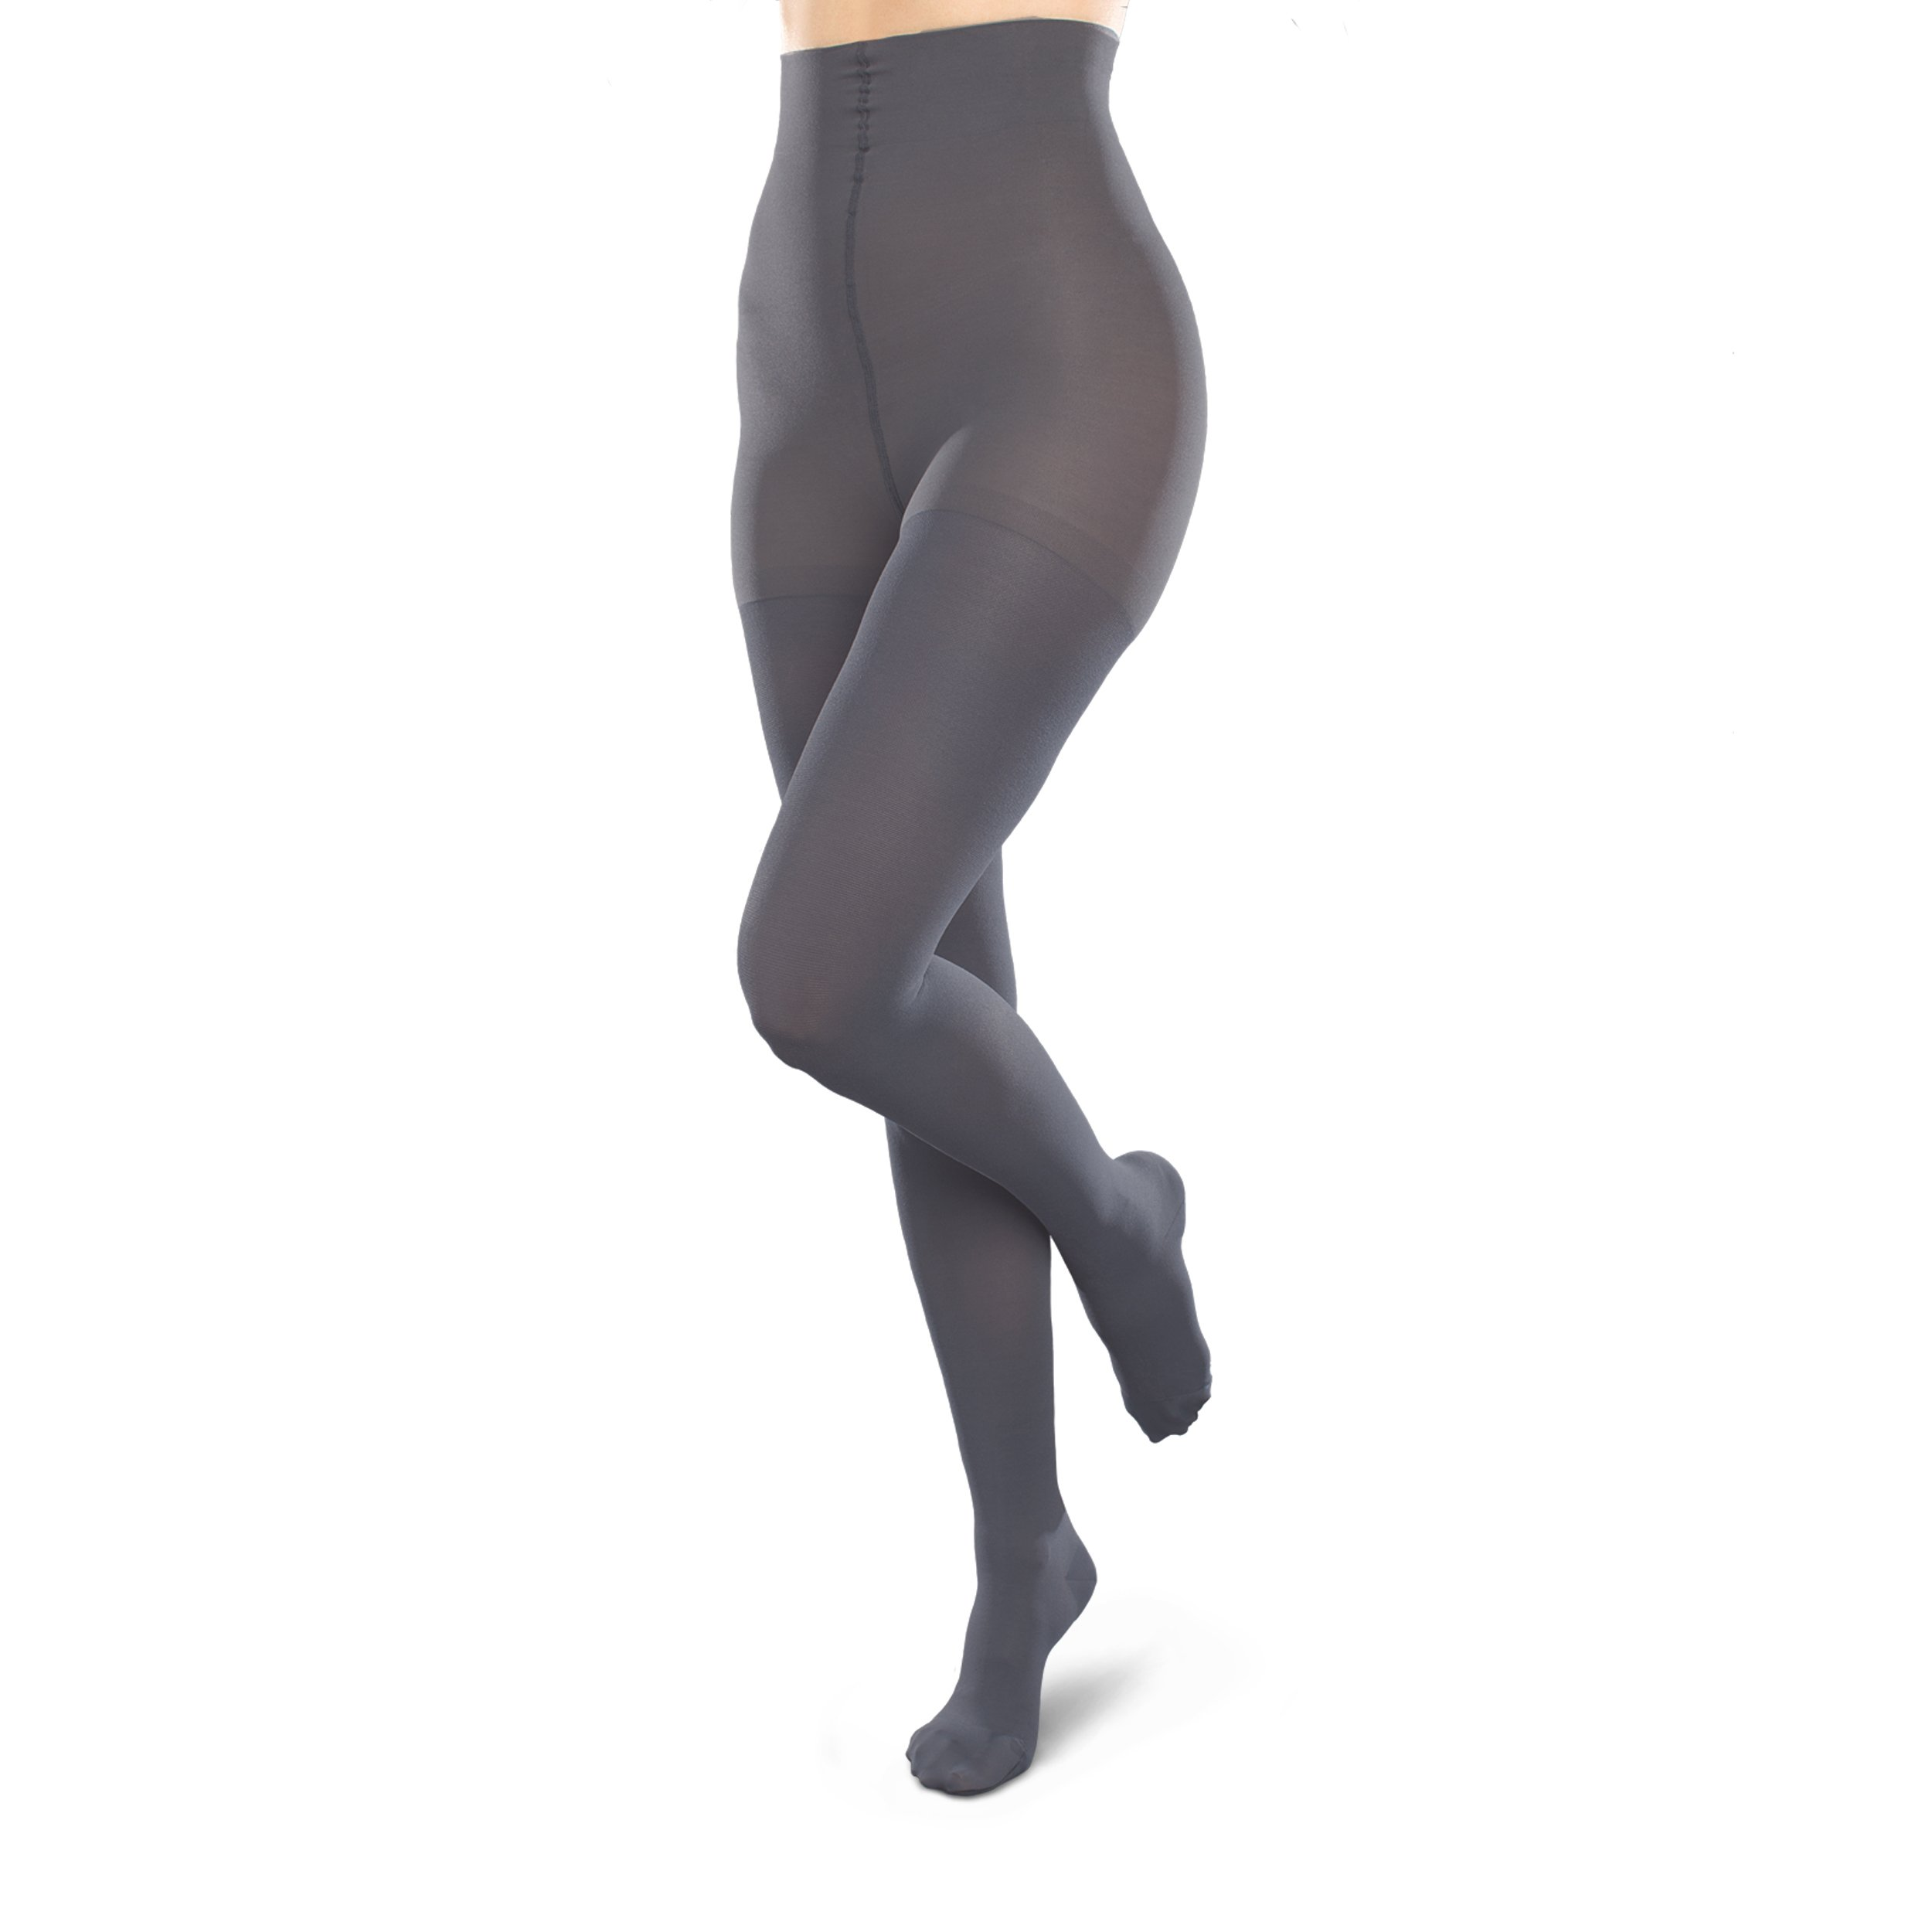 Therafirm Opaque Women's Support Pantyhose - Moderate (20-30mmHg) Graduated Compression Hosiery (Coal, Small Long)